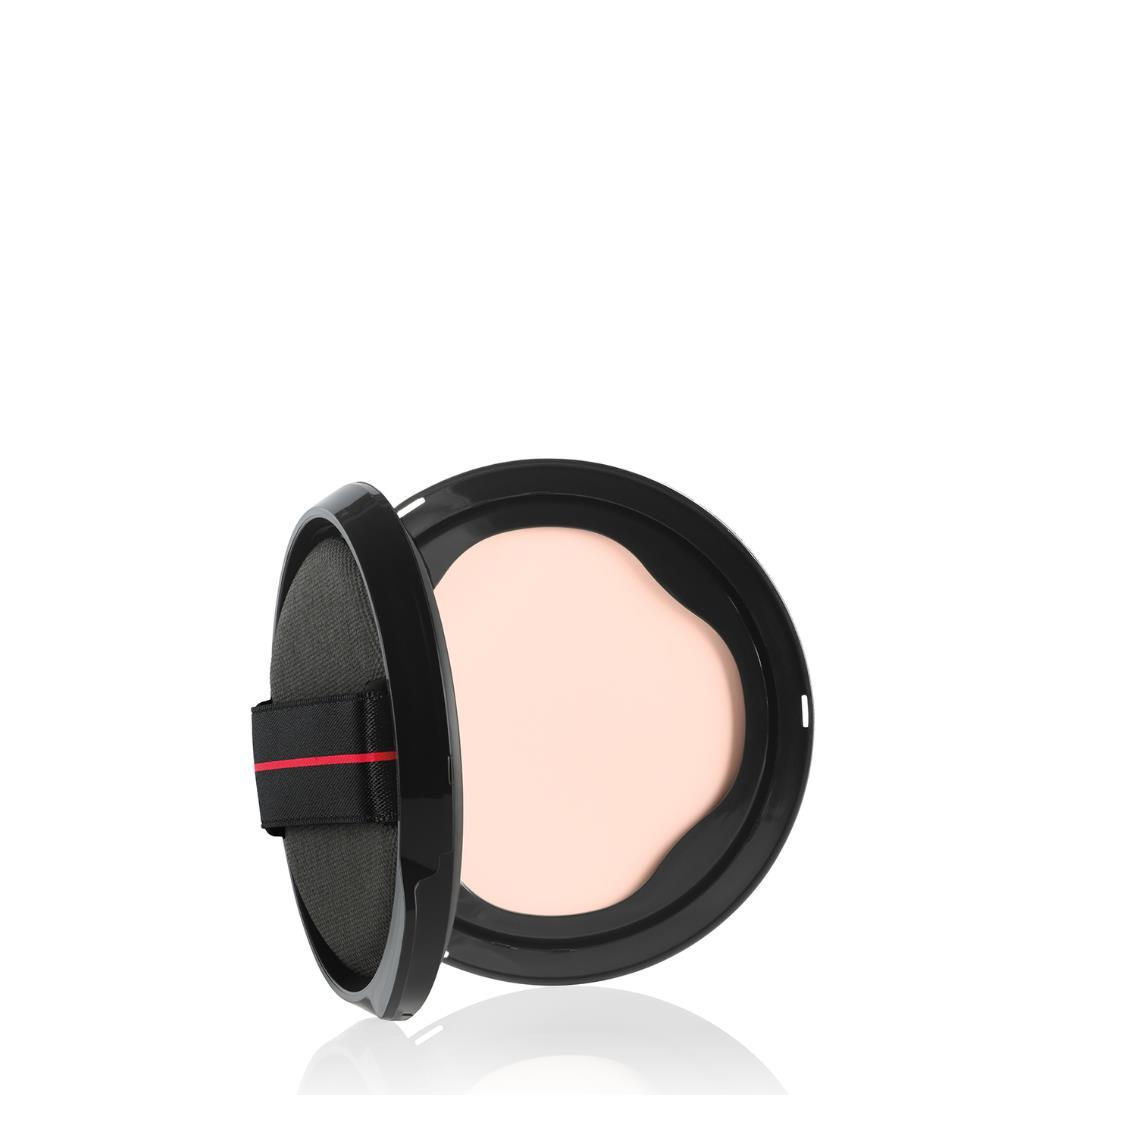 Makeup Synchro Skin Tone Up Primer Compact Refill